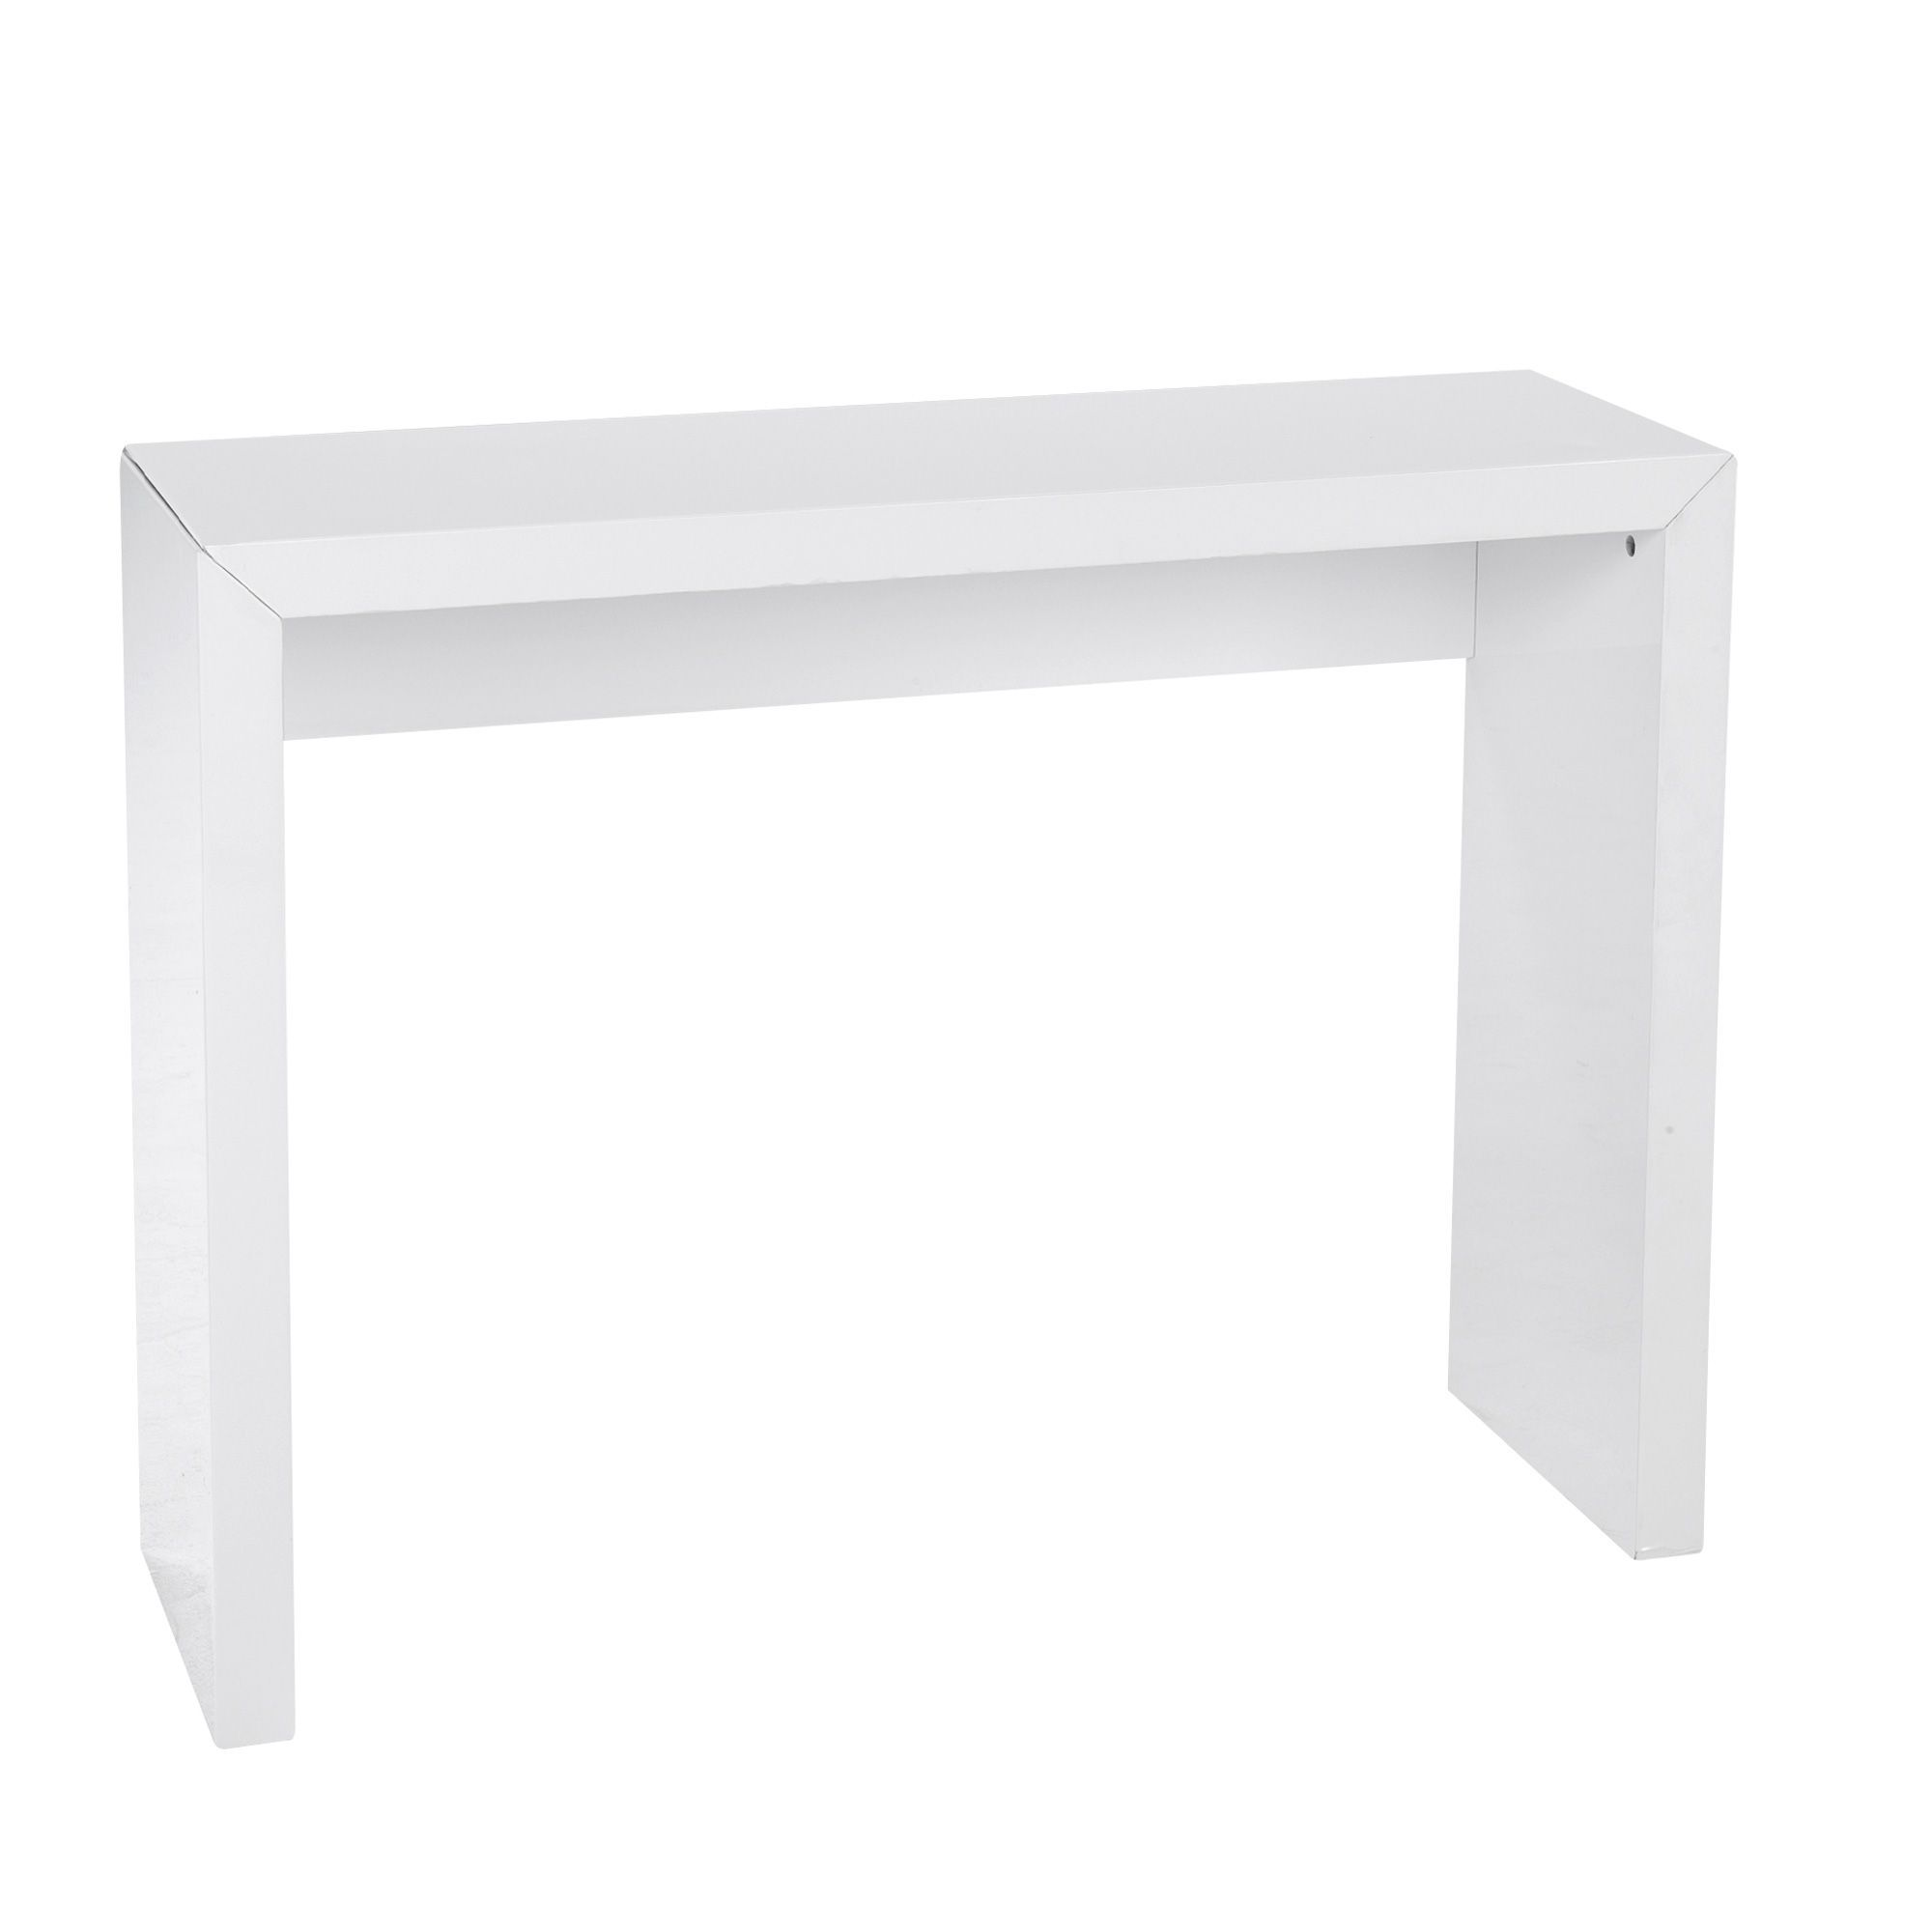 Console Extensible Blanche Table Console Blanche Table Console Extensible Habitat Simple